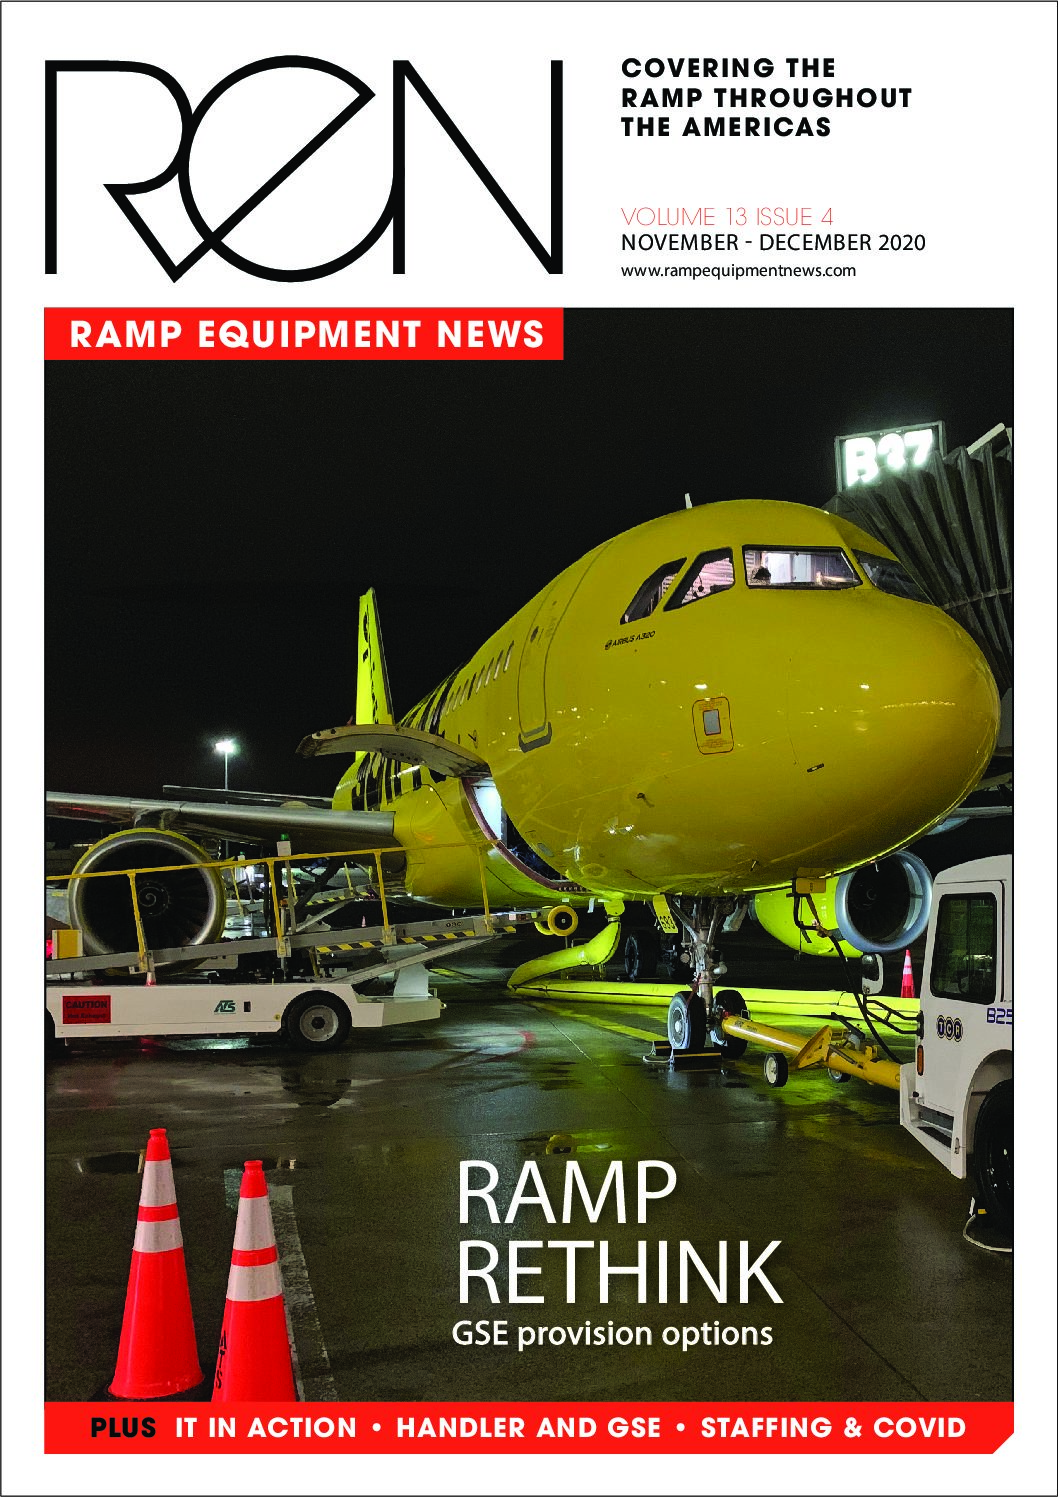 Ramp Equipment News – LEASING SECURITY